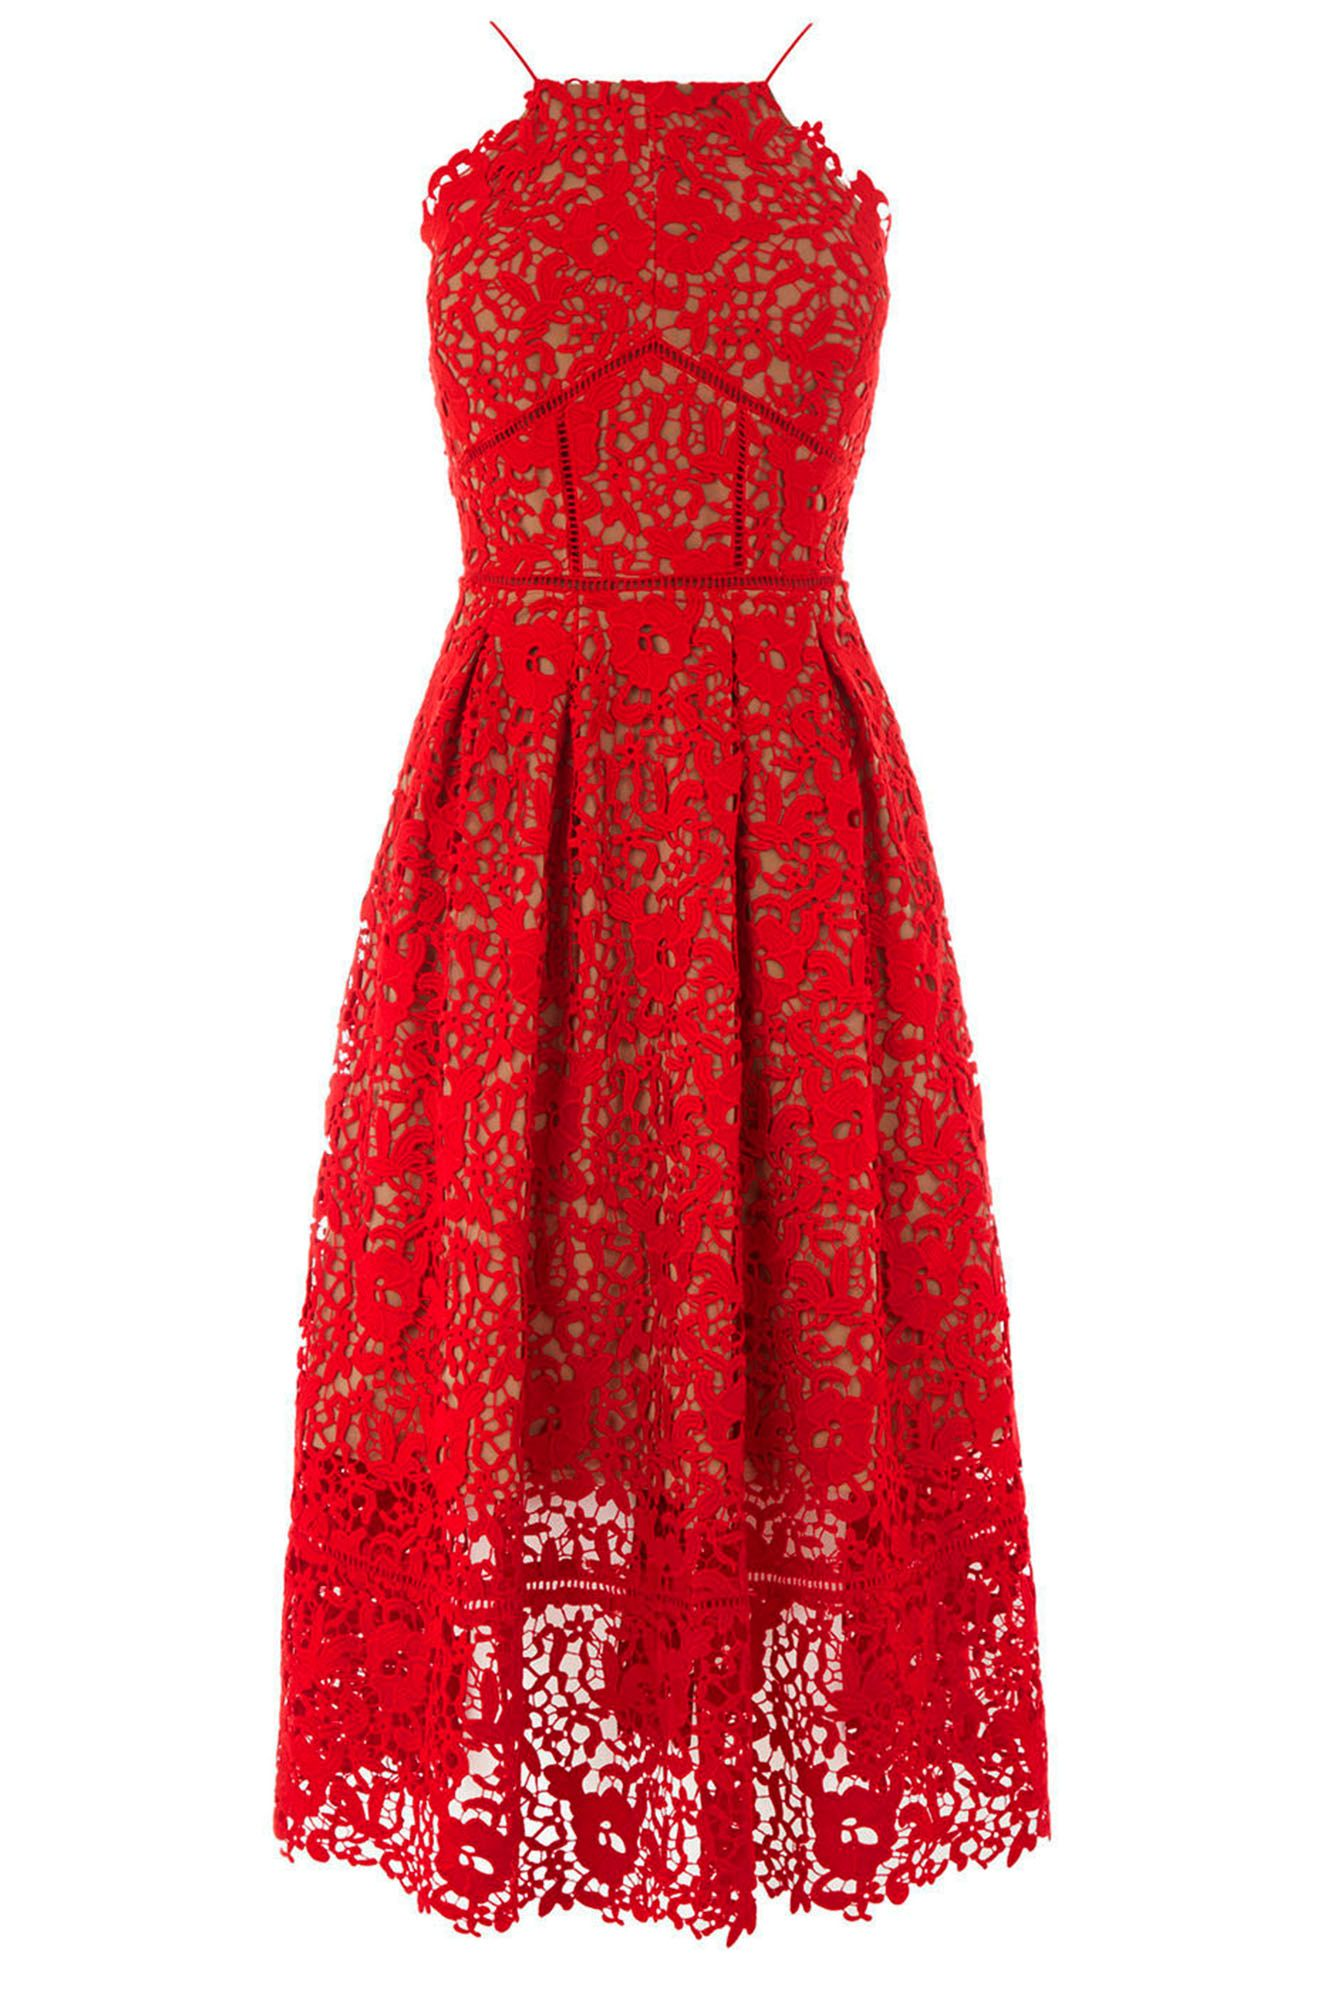 0526feaf77 Warehouse Lace Halter Dress, £165. Love this lace halter dress - the red is  perfect for a patriotic summer wedding